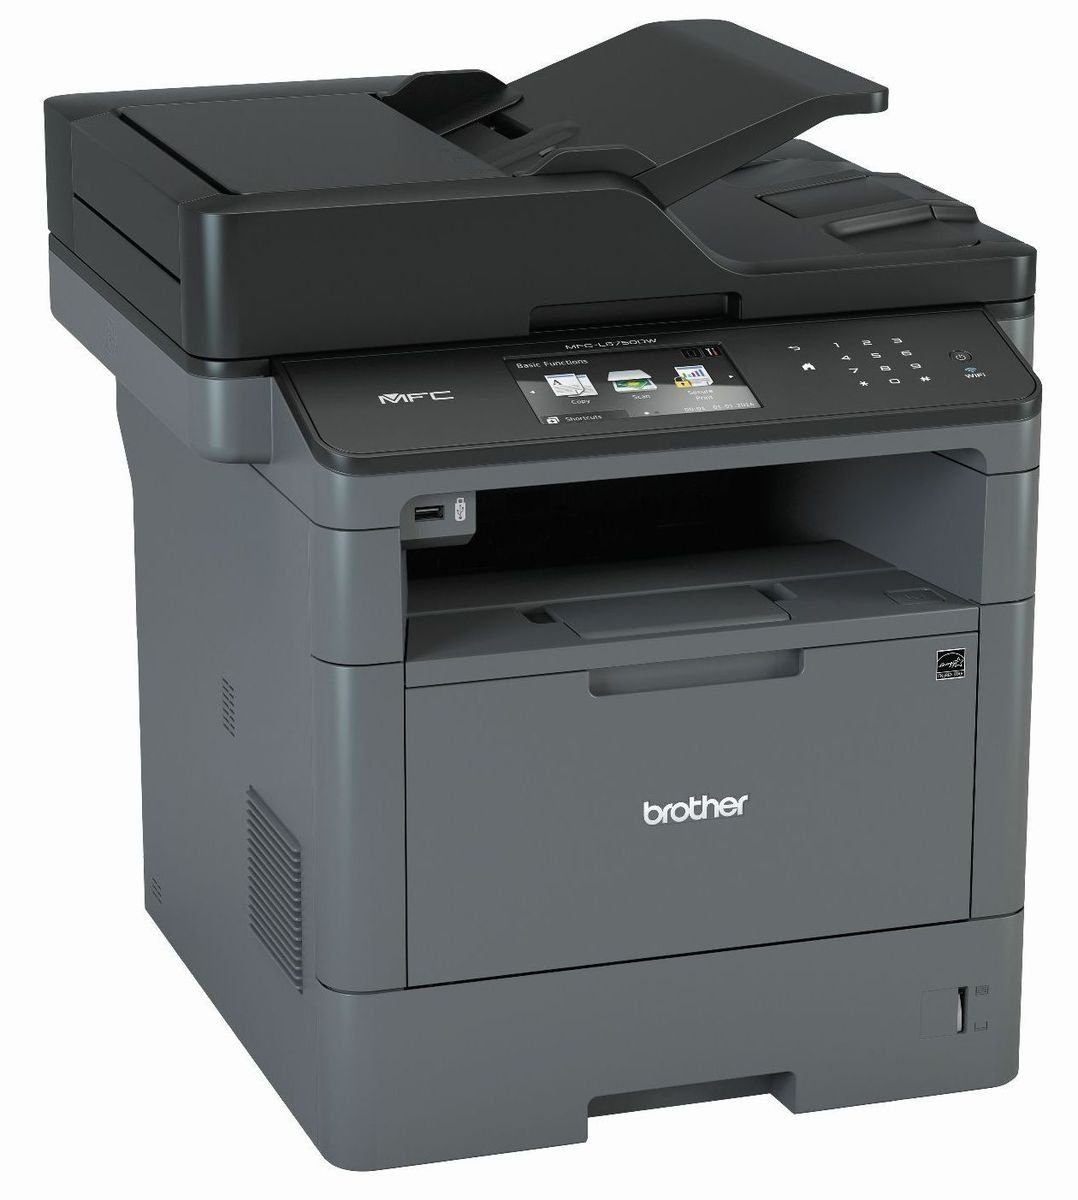 Brother Monolaser-Multifunktionsdrucker »MFC-L5750DW 4in1 Multifunktionsdrucker«